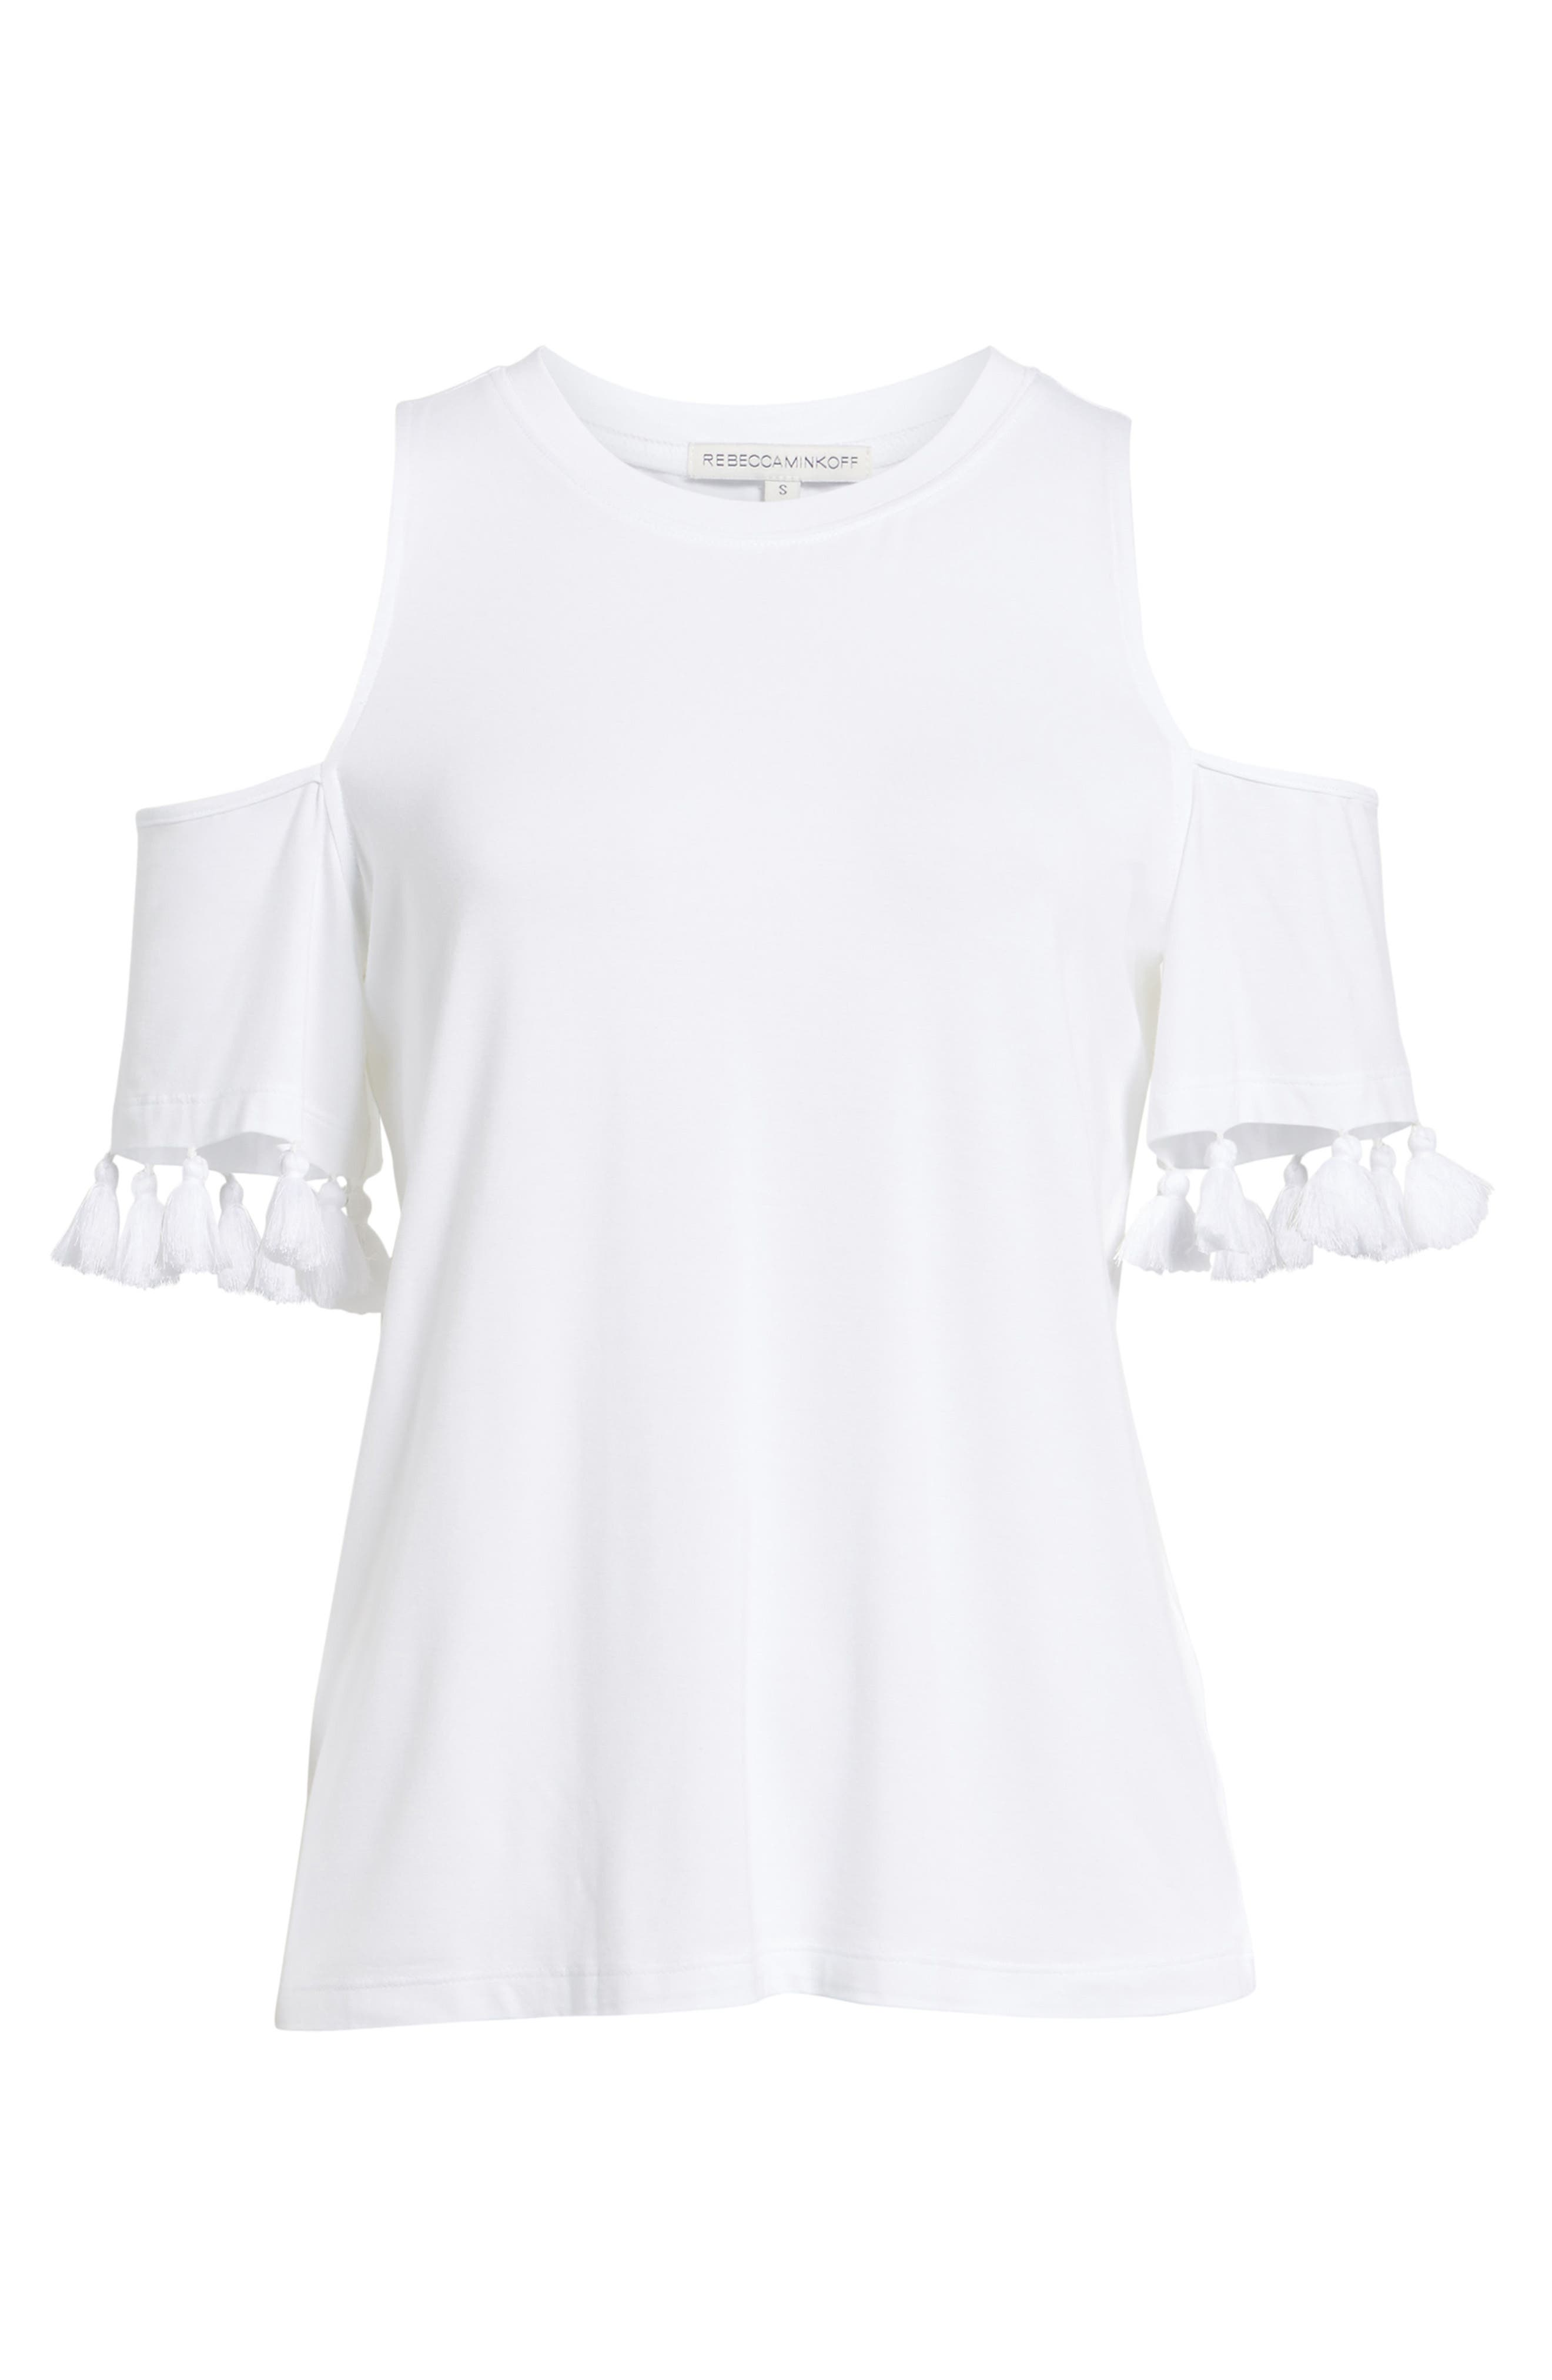 Theora Cold Shoulder Tee,                             Alternate thumbnail 6, color,                             White